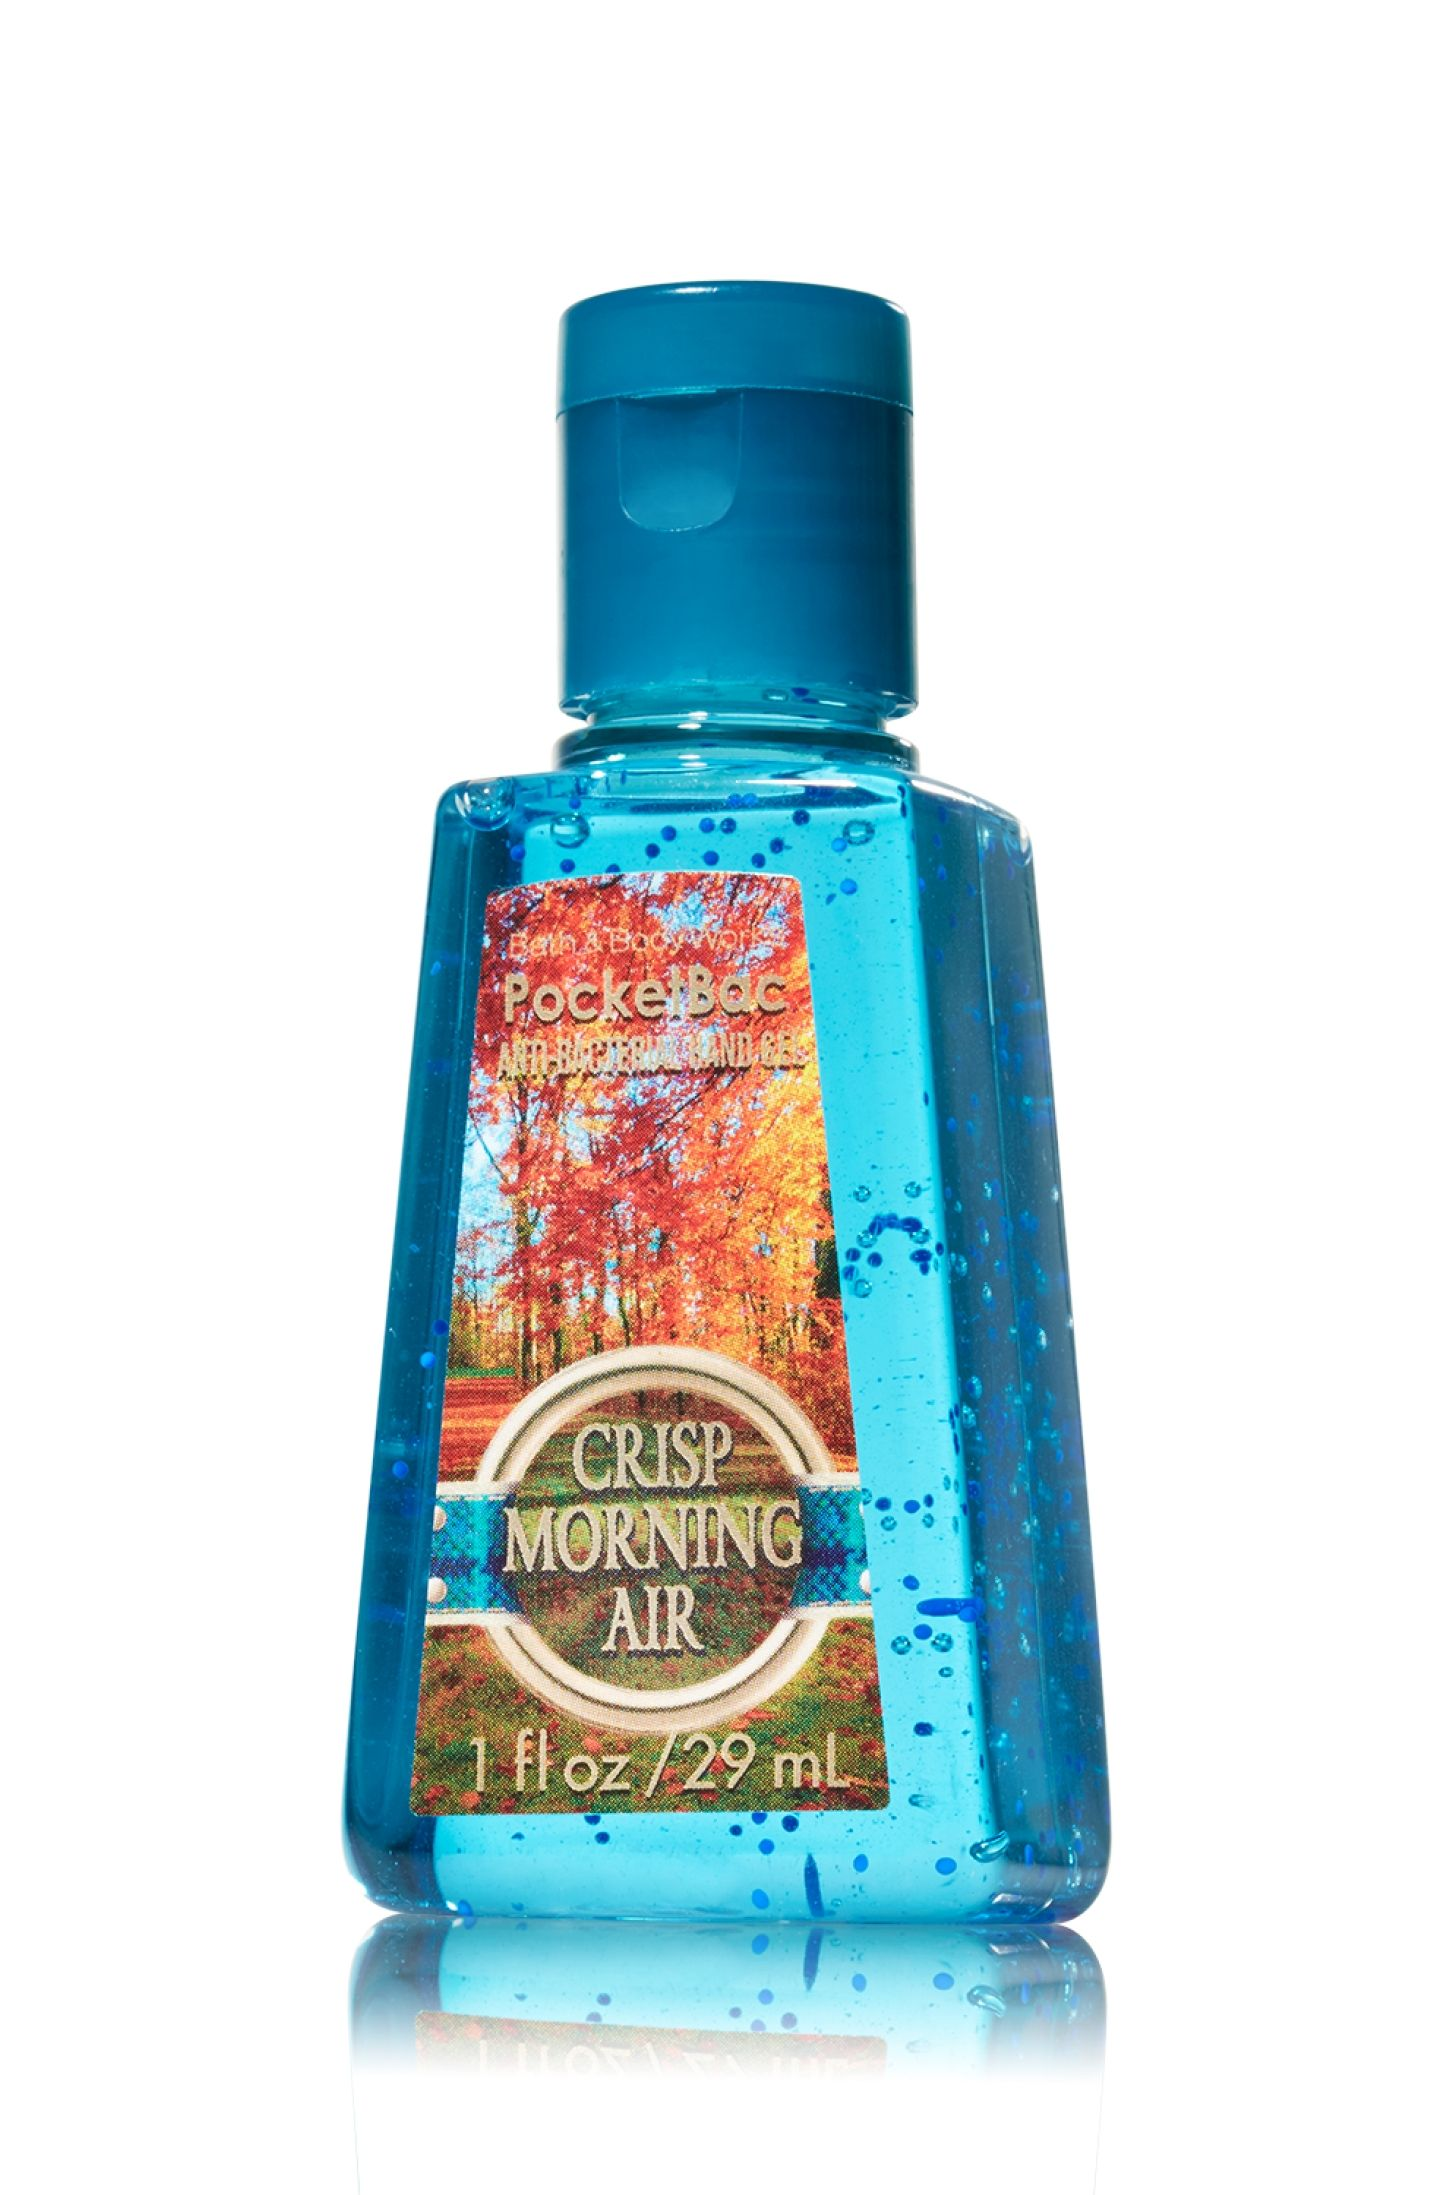 Crisp Morning Air Pocketbac Sanitizing Hand Gel Soap Sanitizer